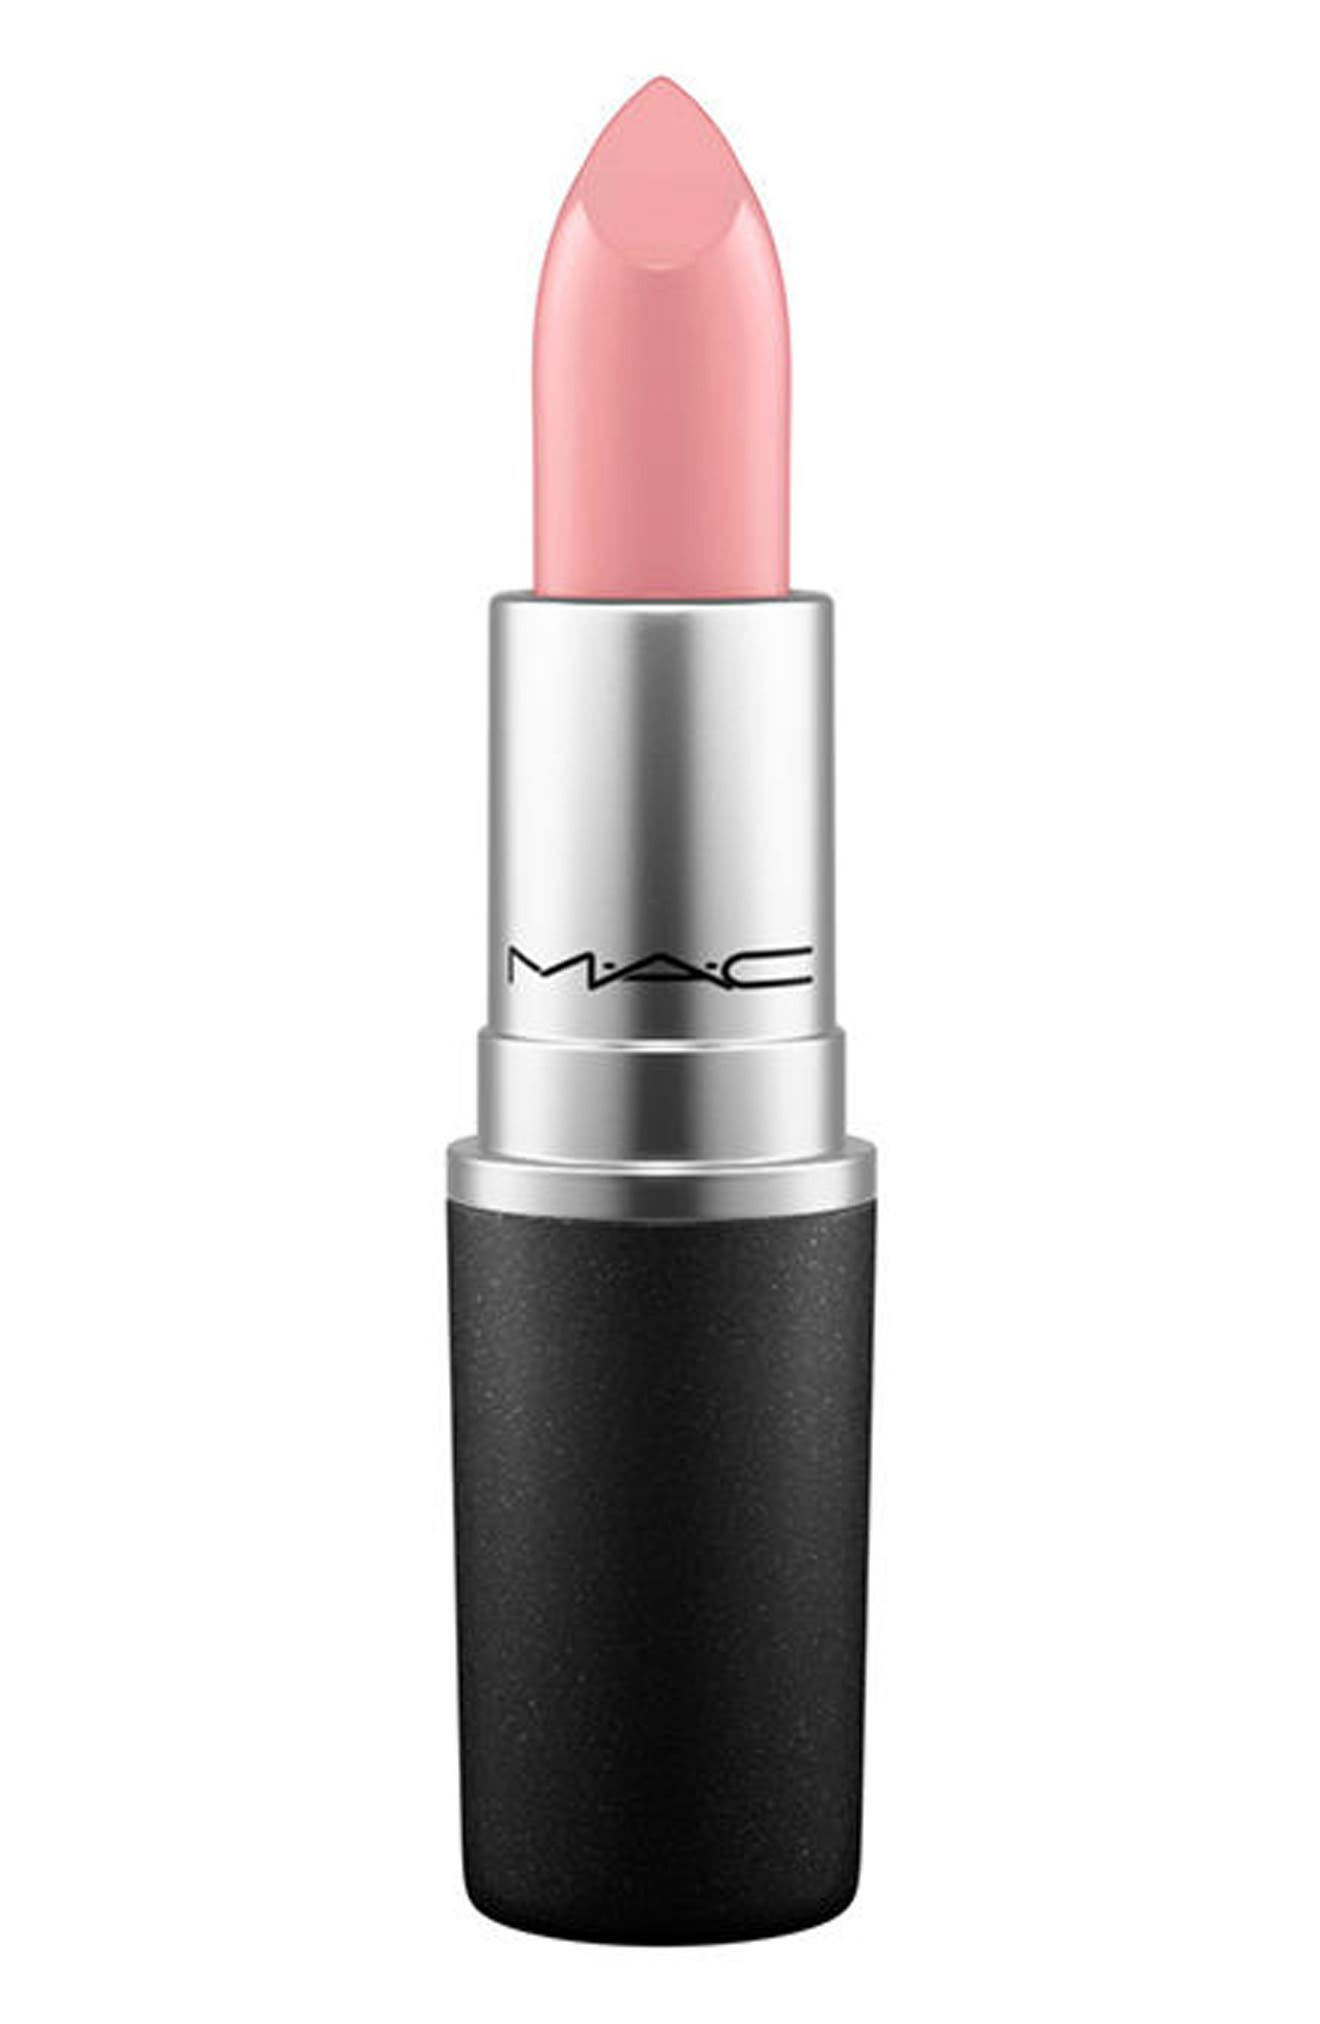 MAC Pink Lipstick,                             Main thumbnail 1, color,                             CREME CUP (C)